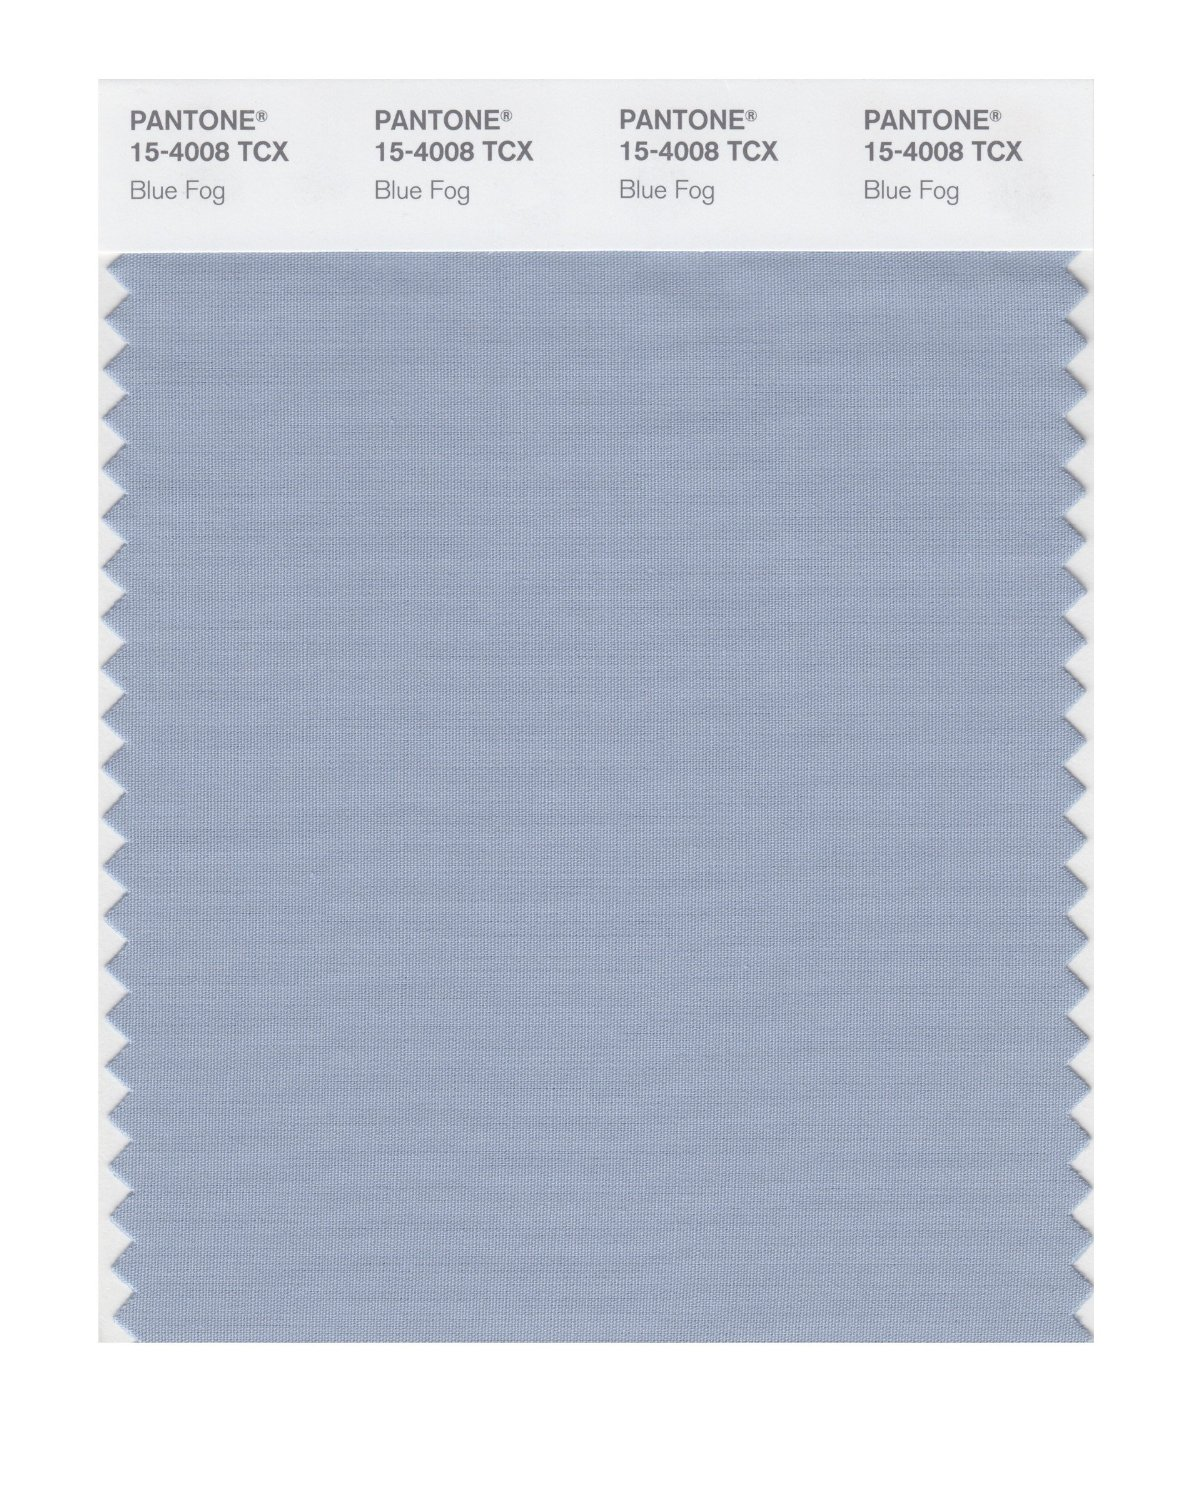 Pantone Smart Swatch 15-4008 Blue Fog